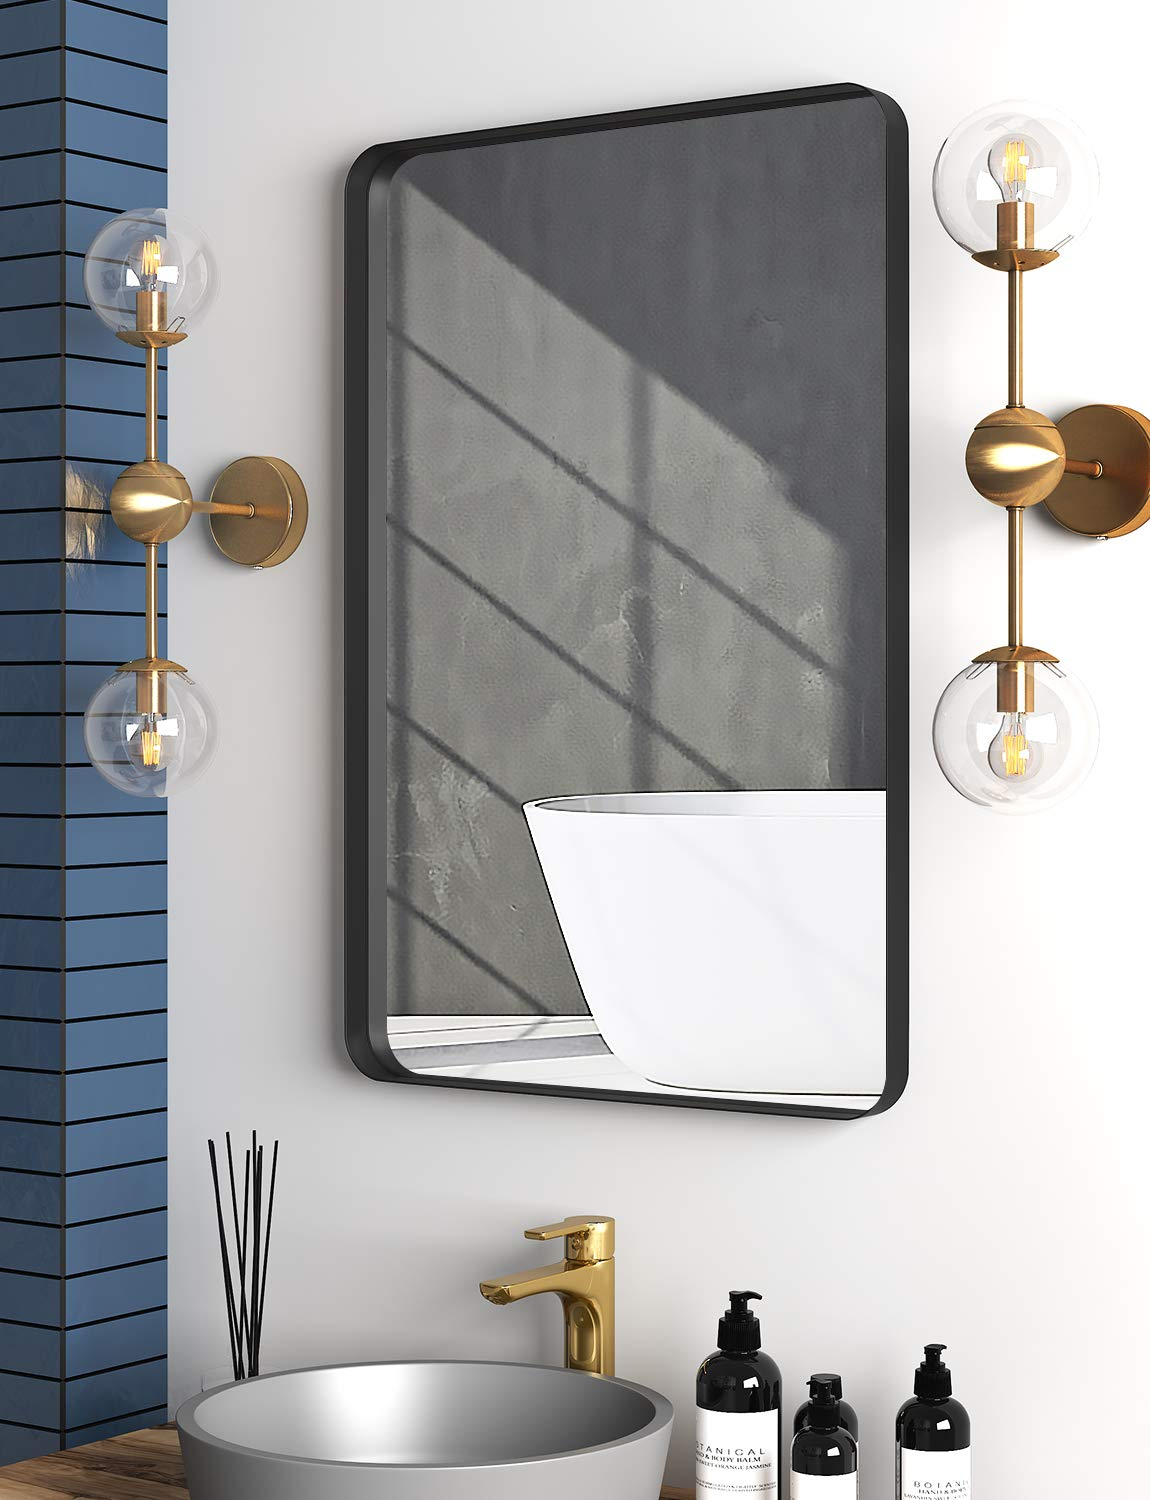 Rectangle Metal Frame Wall Mirror For Bathroom 24 X 36 Inch Wall Mounted Vanity Mirror Rounded Corner Black Frame Buy Online In Cayman Islands At Cayman Desertcart Com Productid 216396067